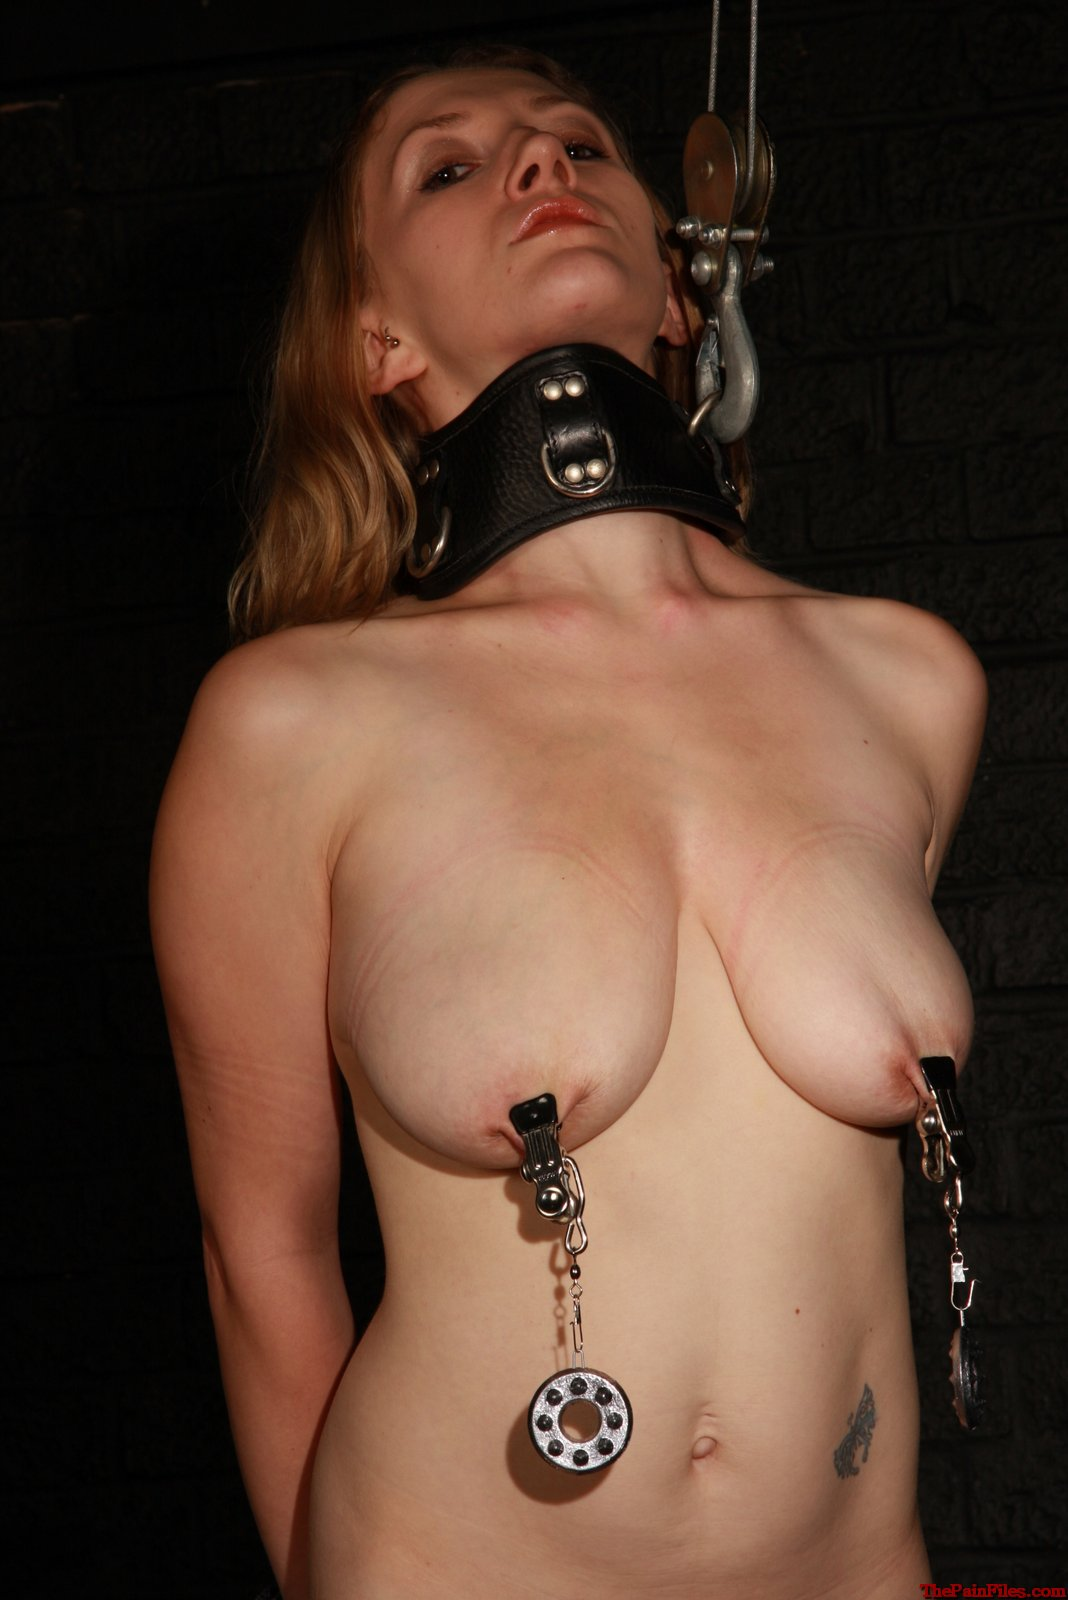 bondage Tied nipple